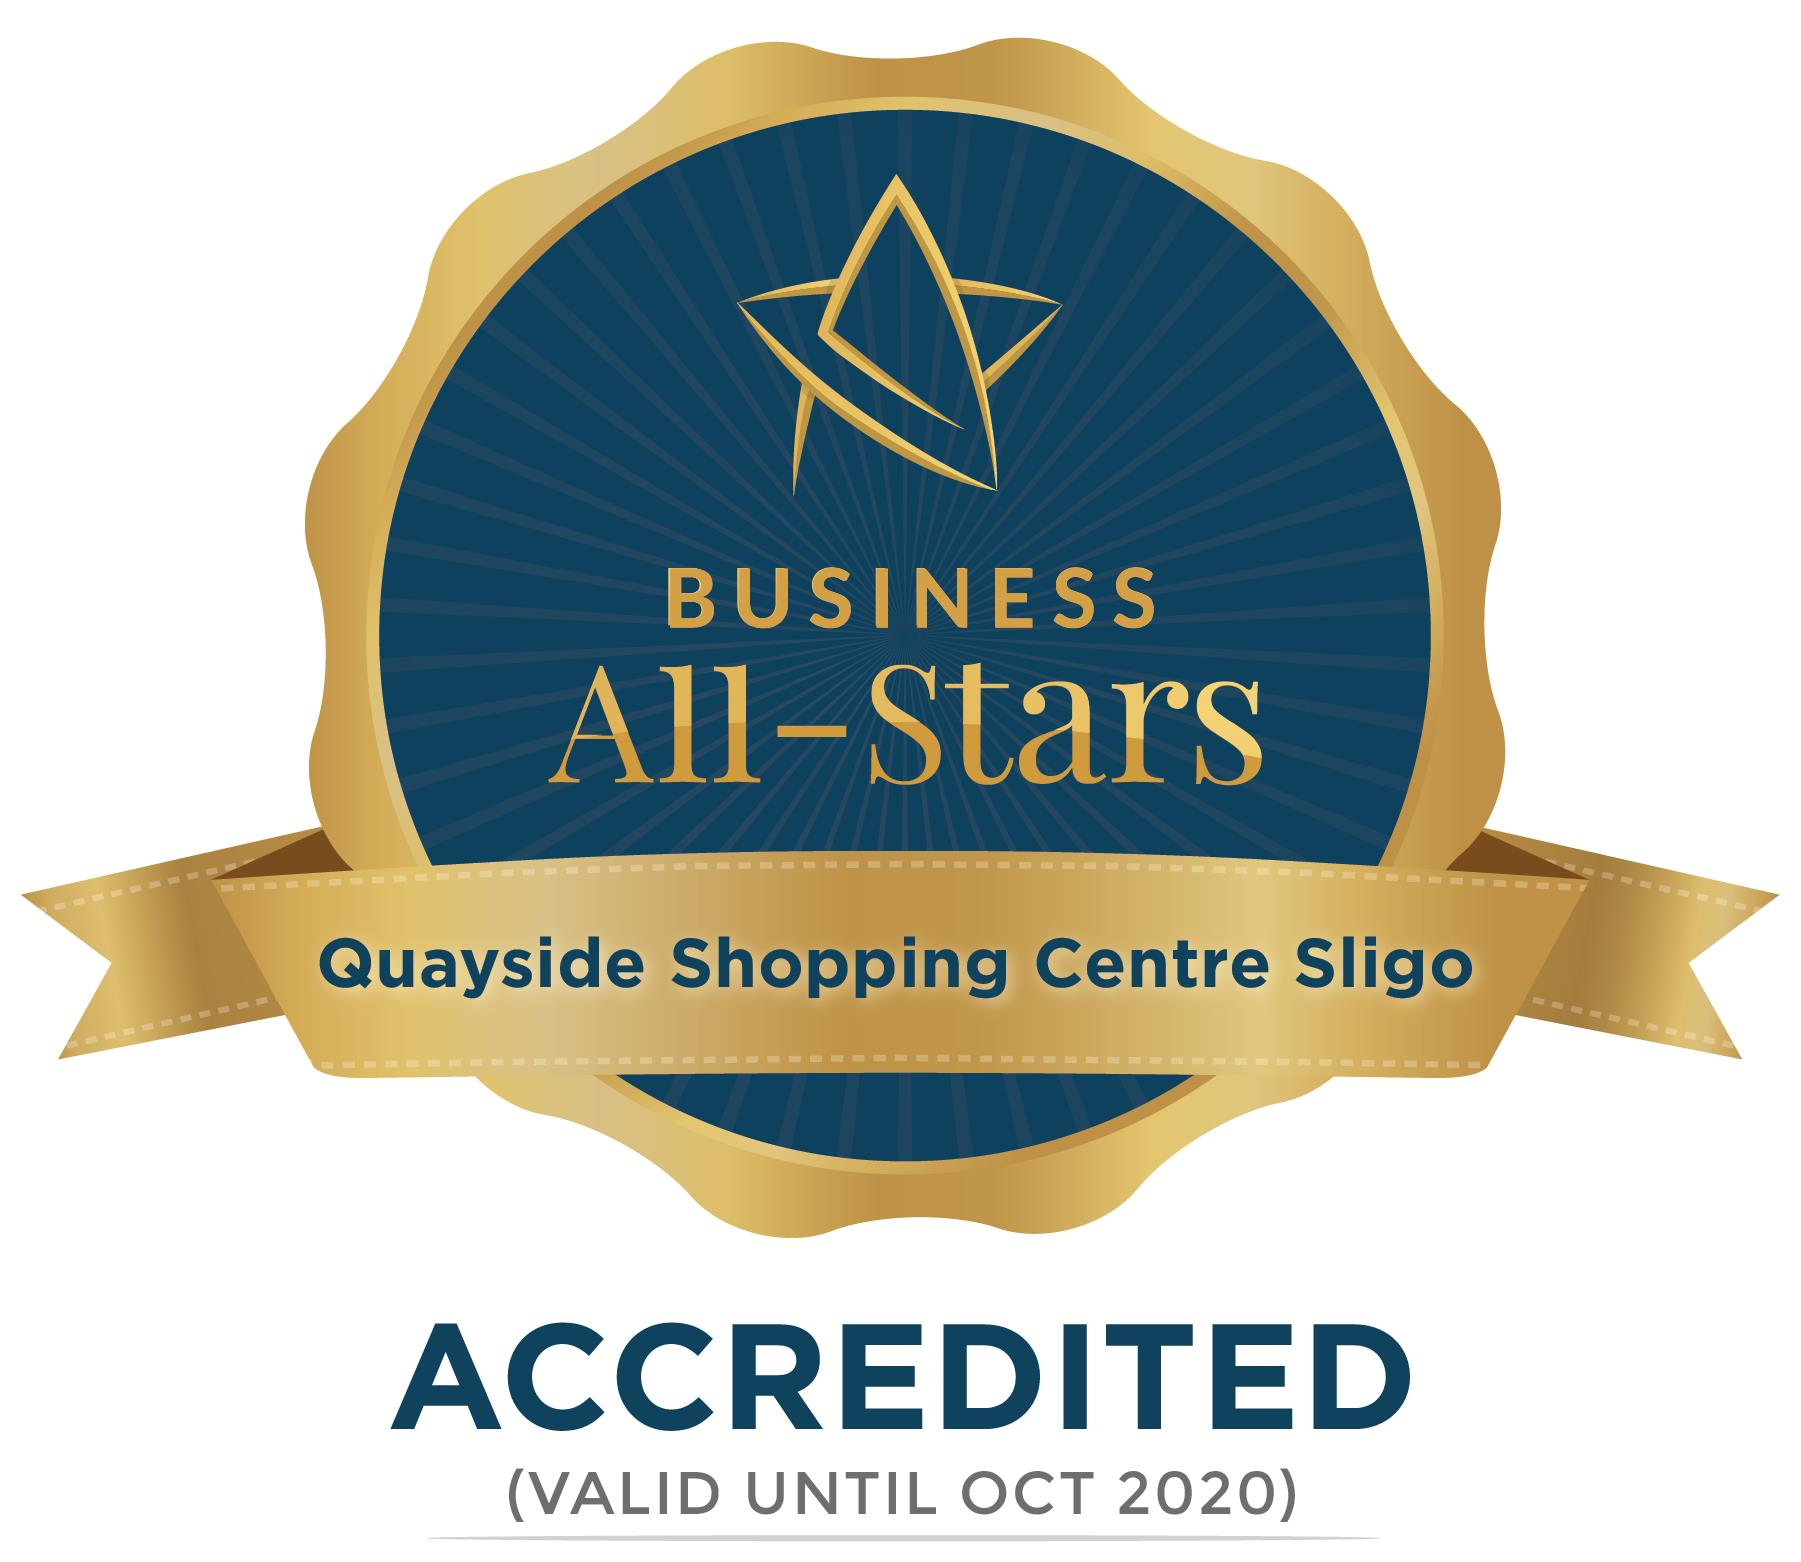 Quayside Shopping Centre Sligo - Business All-Stars Accreditation